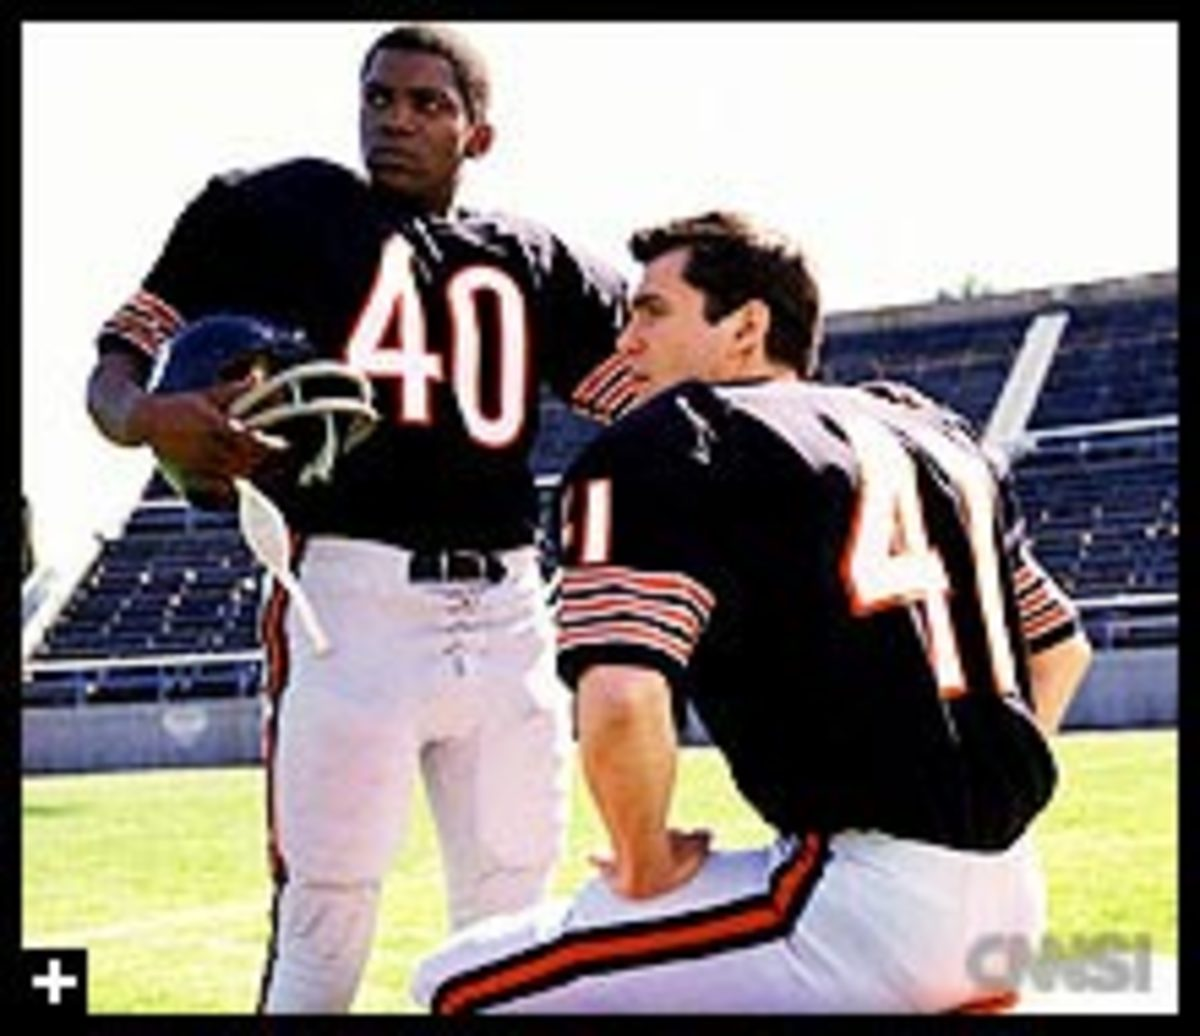 Gale Sayers sportsillustrated.cnn.com